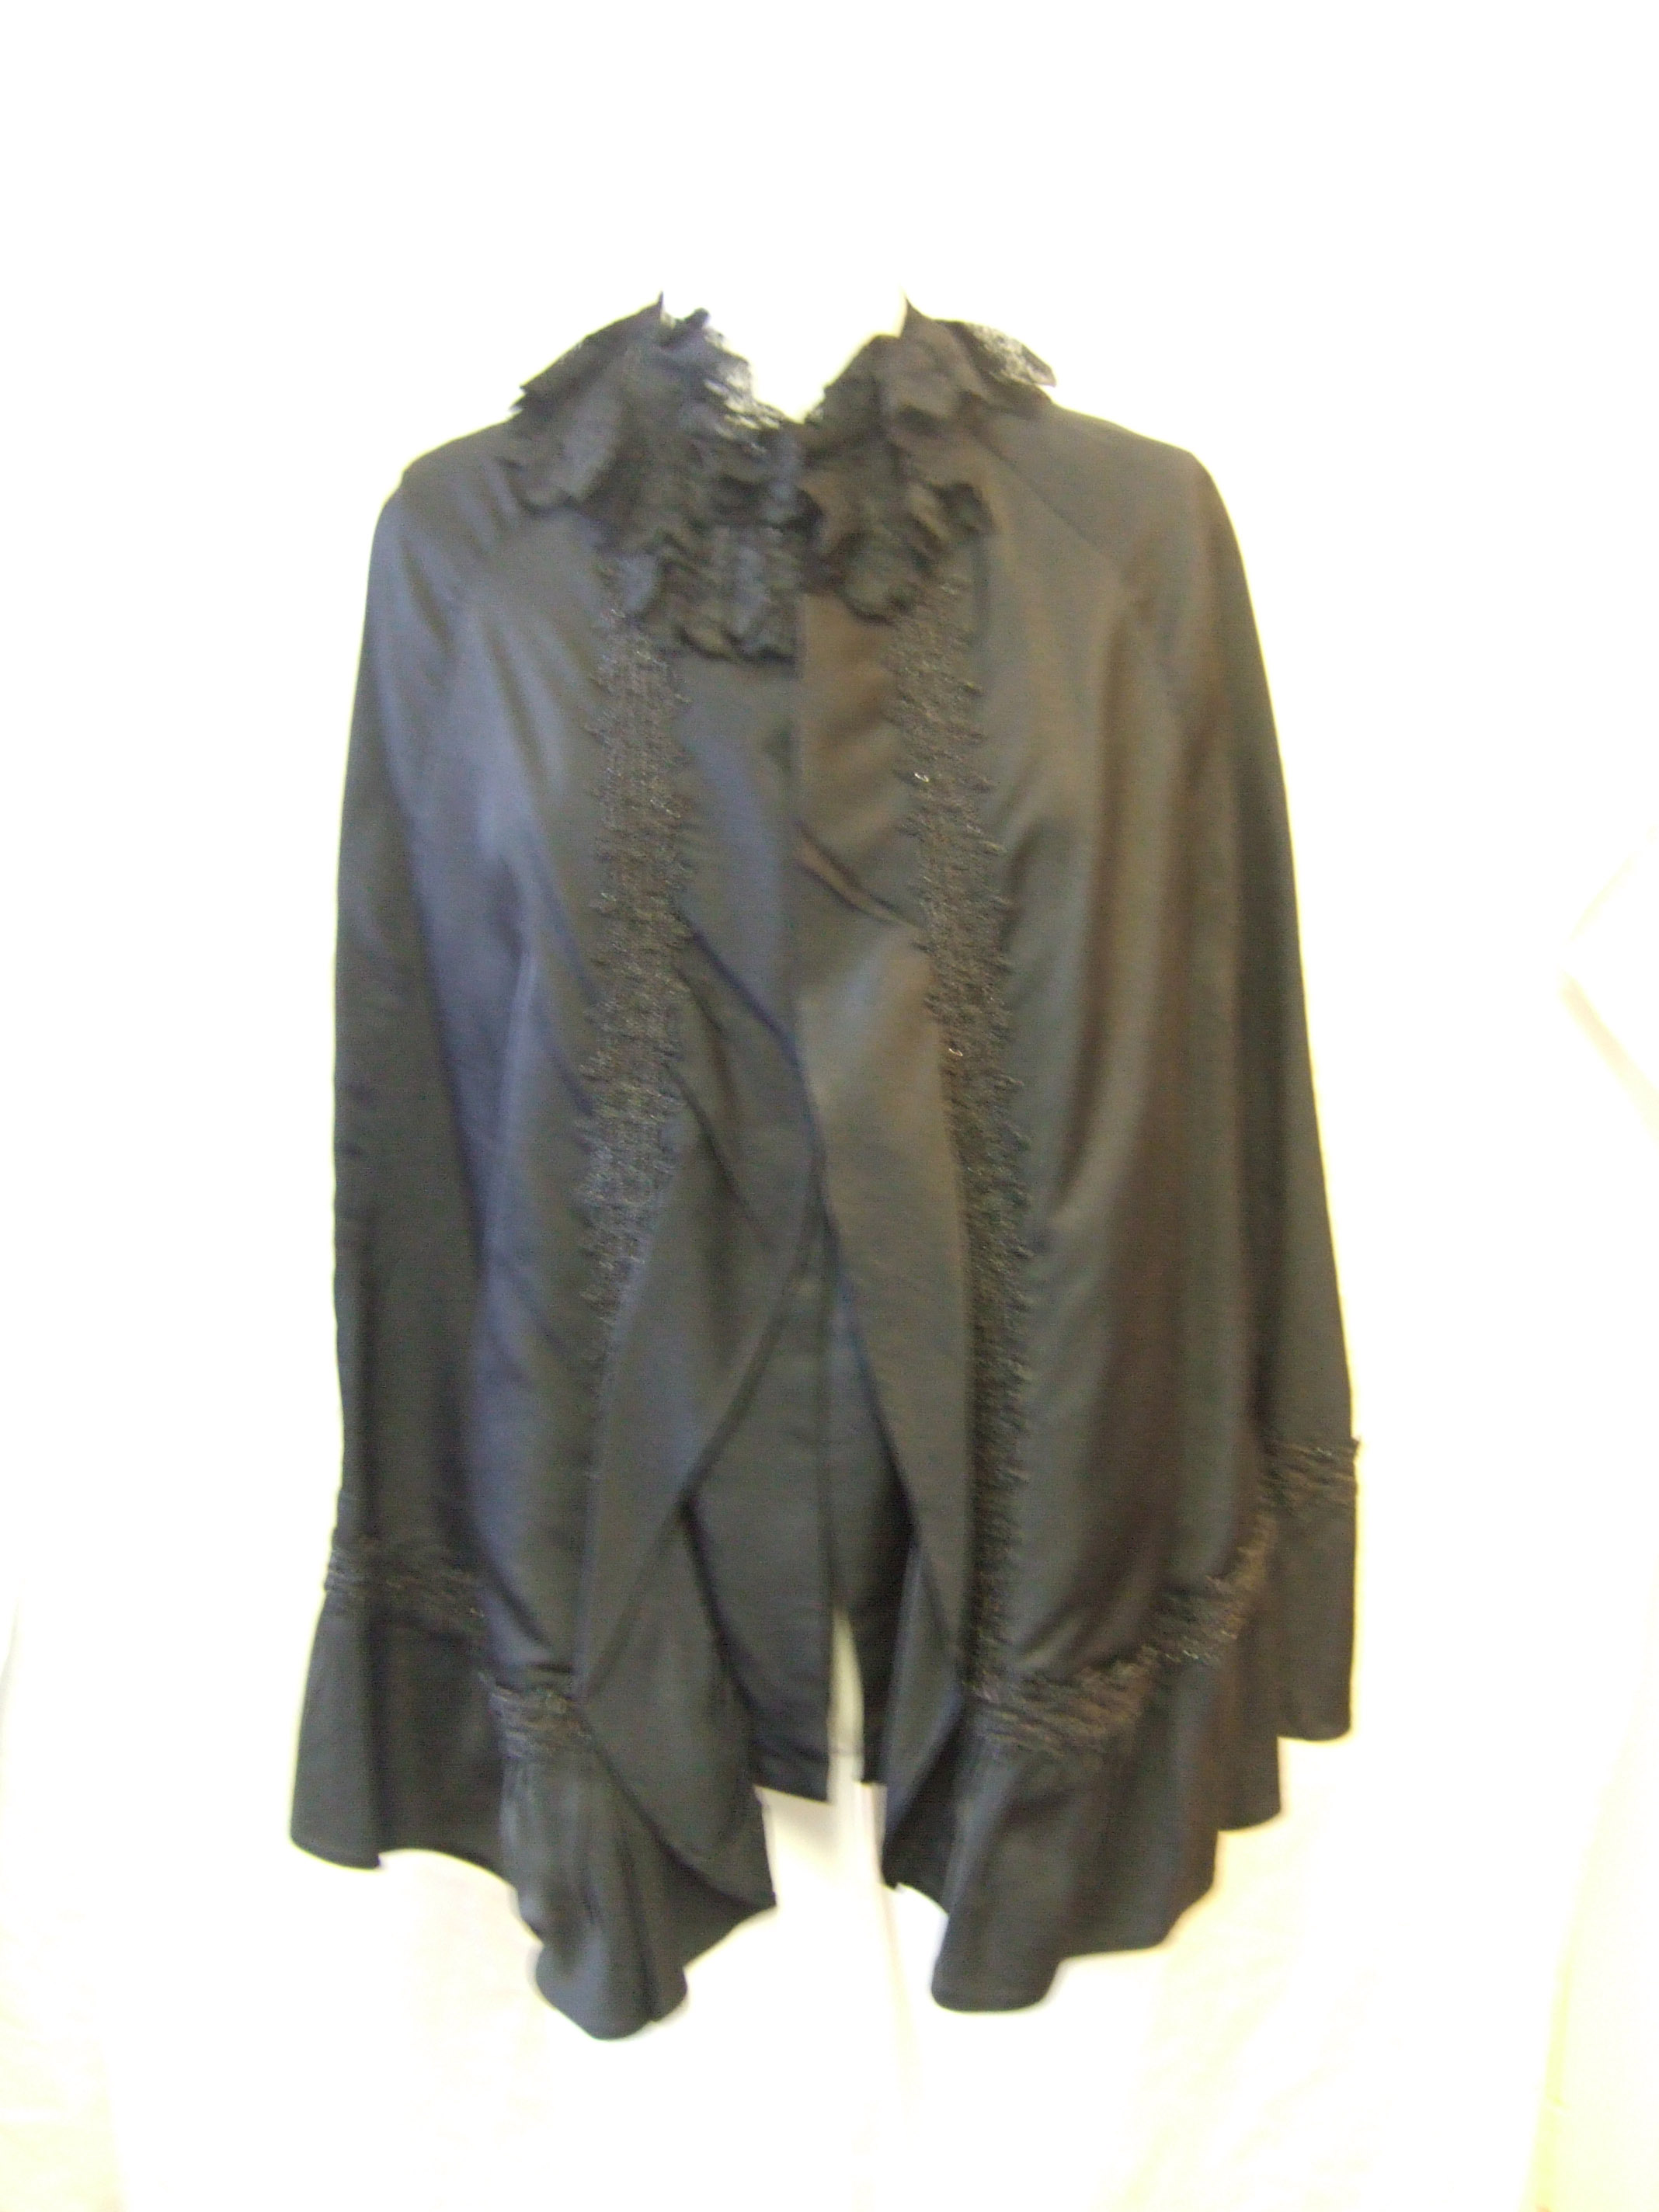 Woman's cape in black silk satin c.1900-1920. Made of 8 panels, darted to give slight shaping at the shoulder. Small stand collar trimmed with black machine lace.